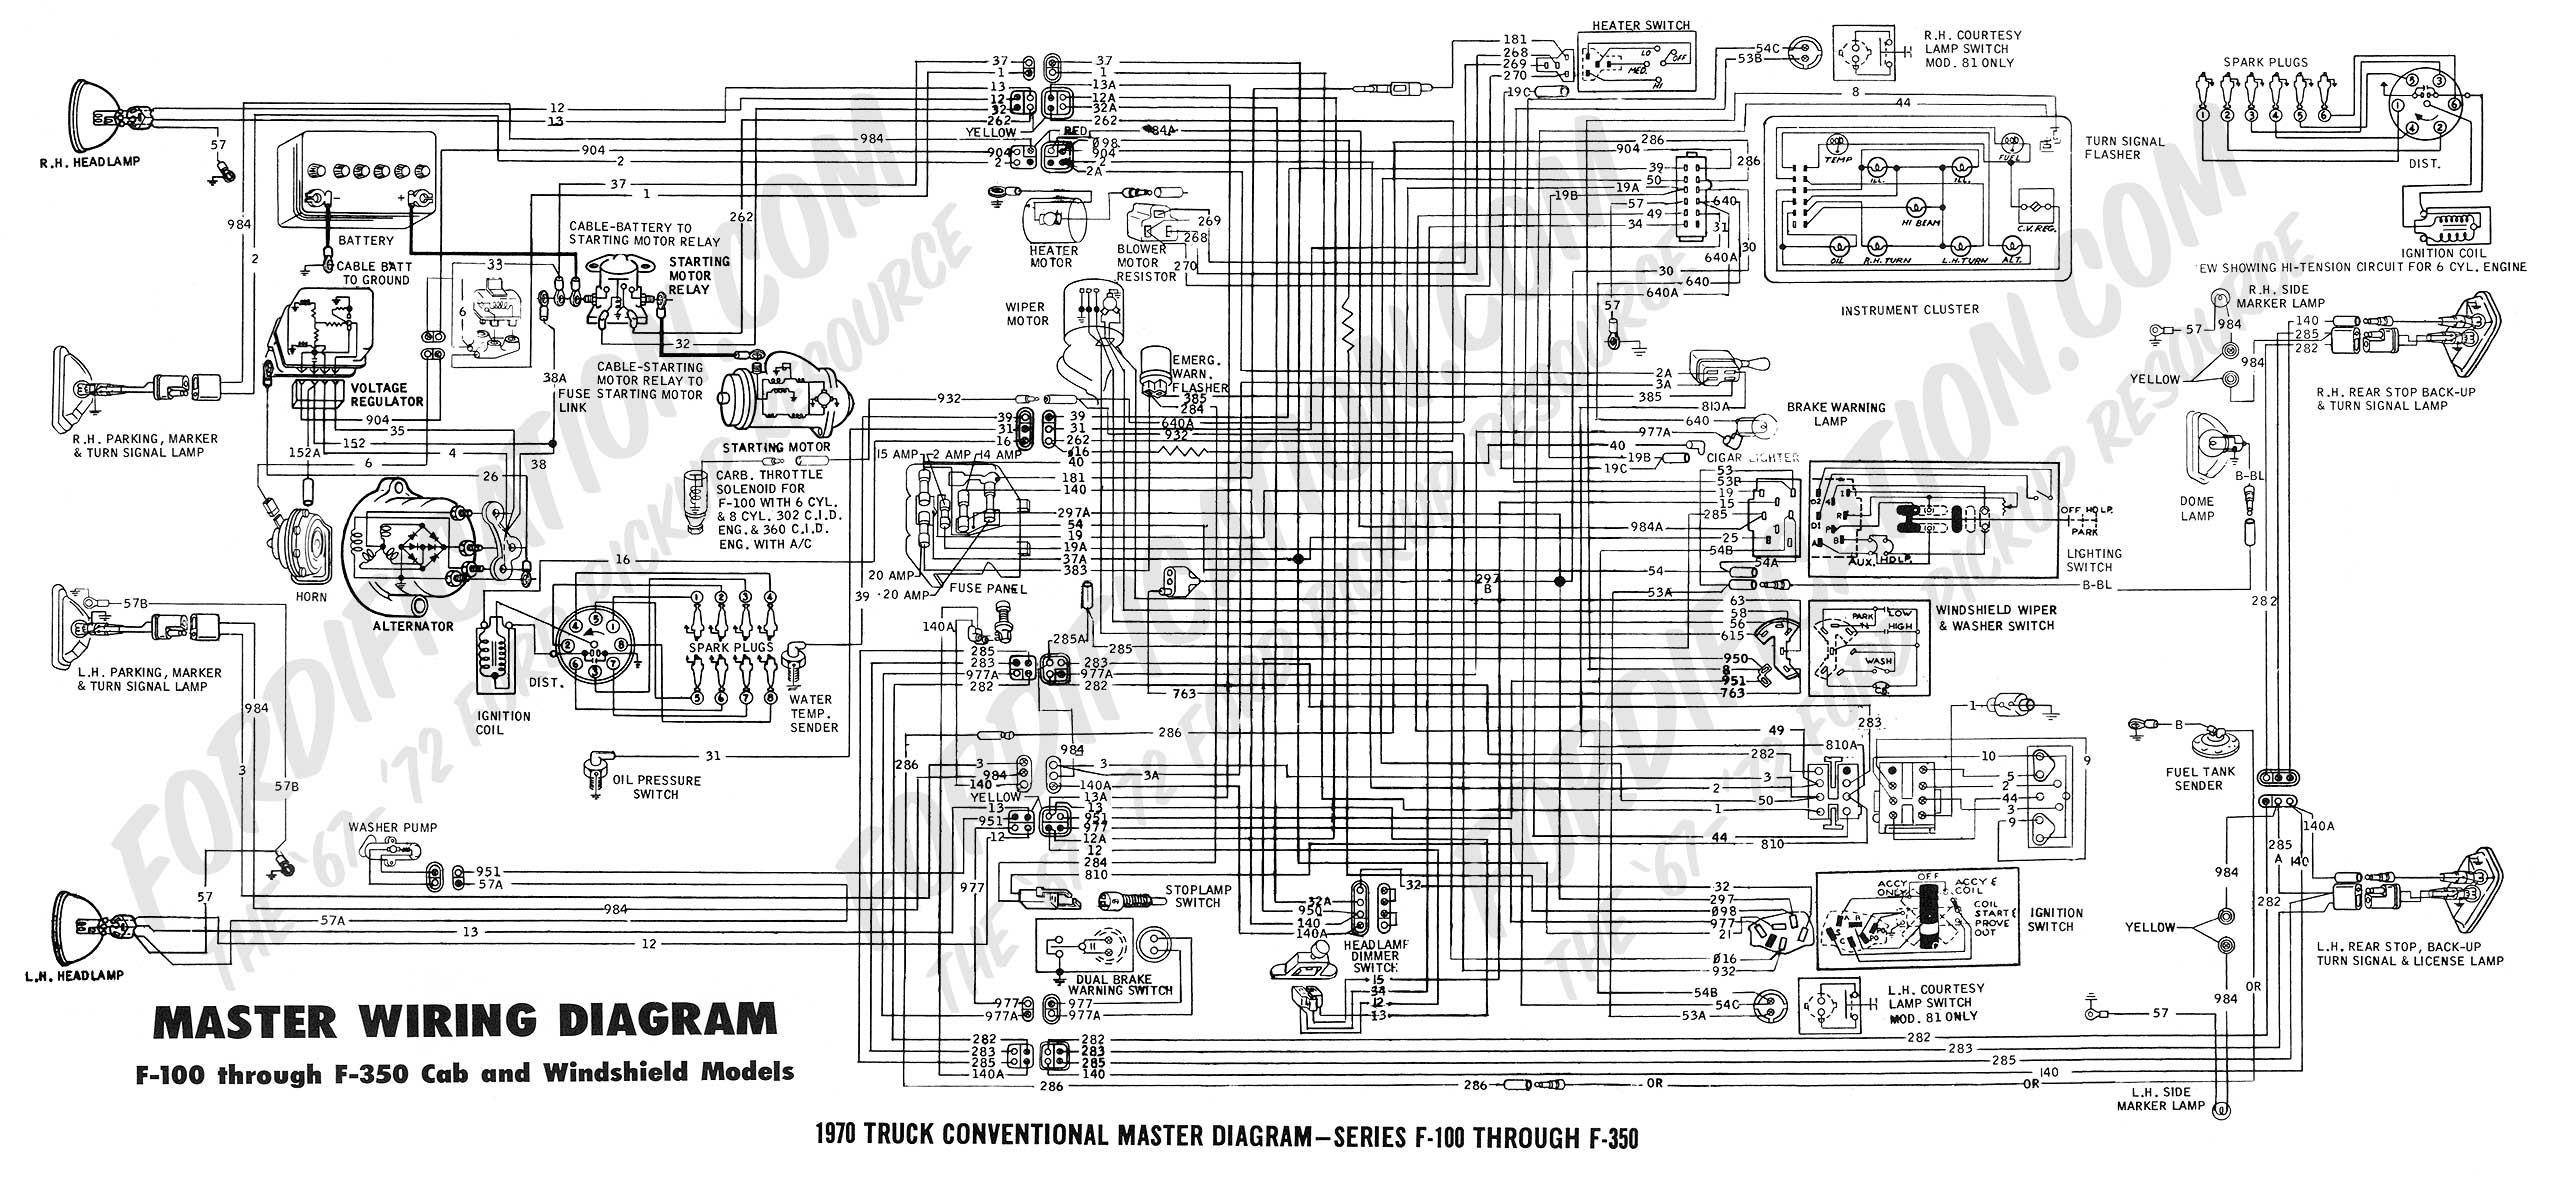 wiring diagram 70_master f450 wiring diagram pto wiring diagram f450 \u2022 wiring diagrams j Ford Edge Trailer Wiring at edmiracle.co